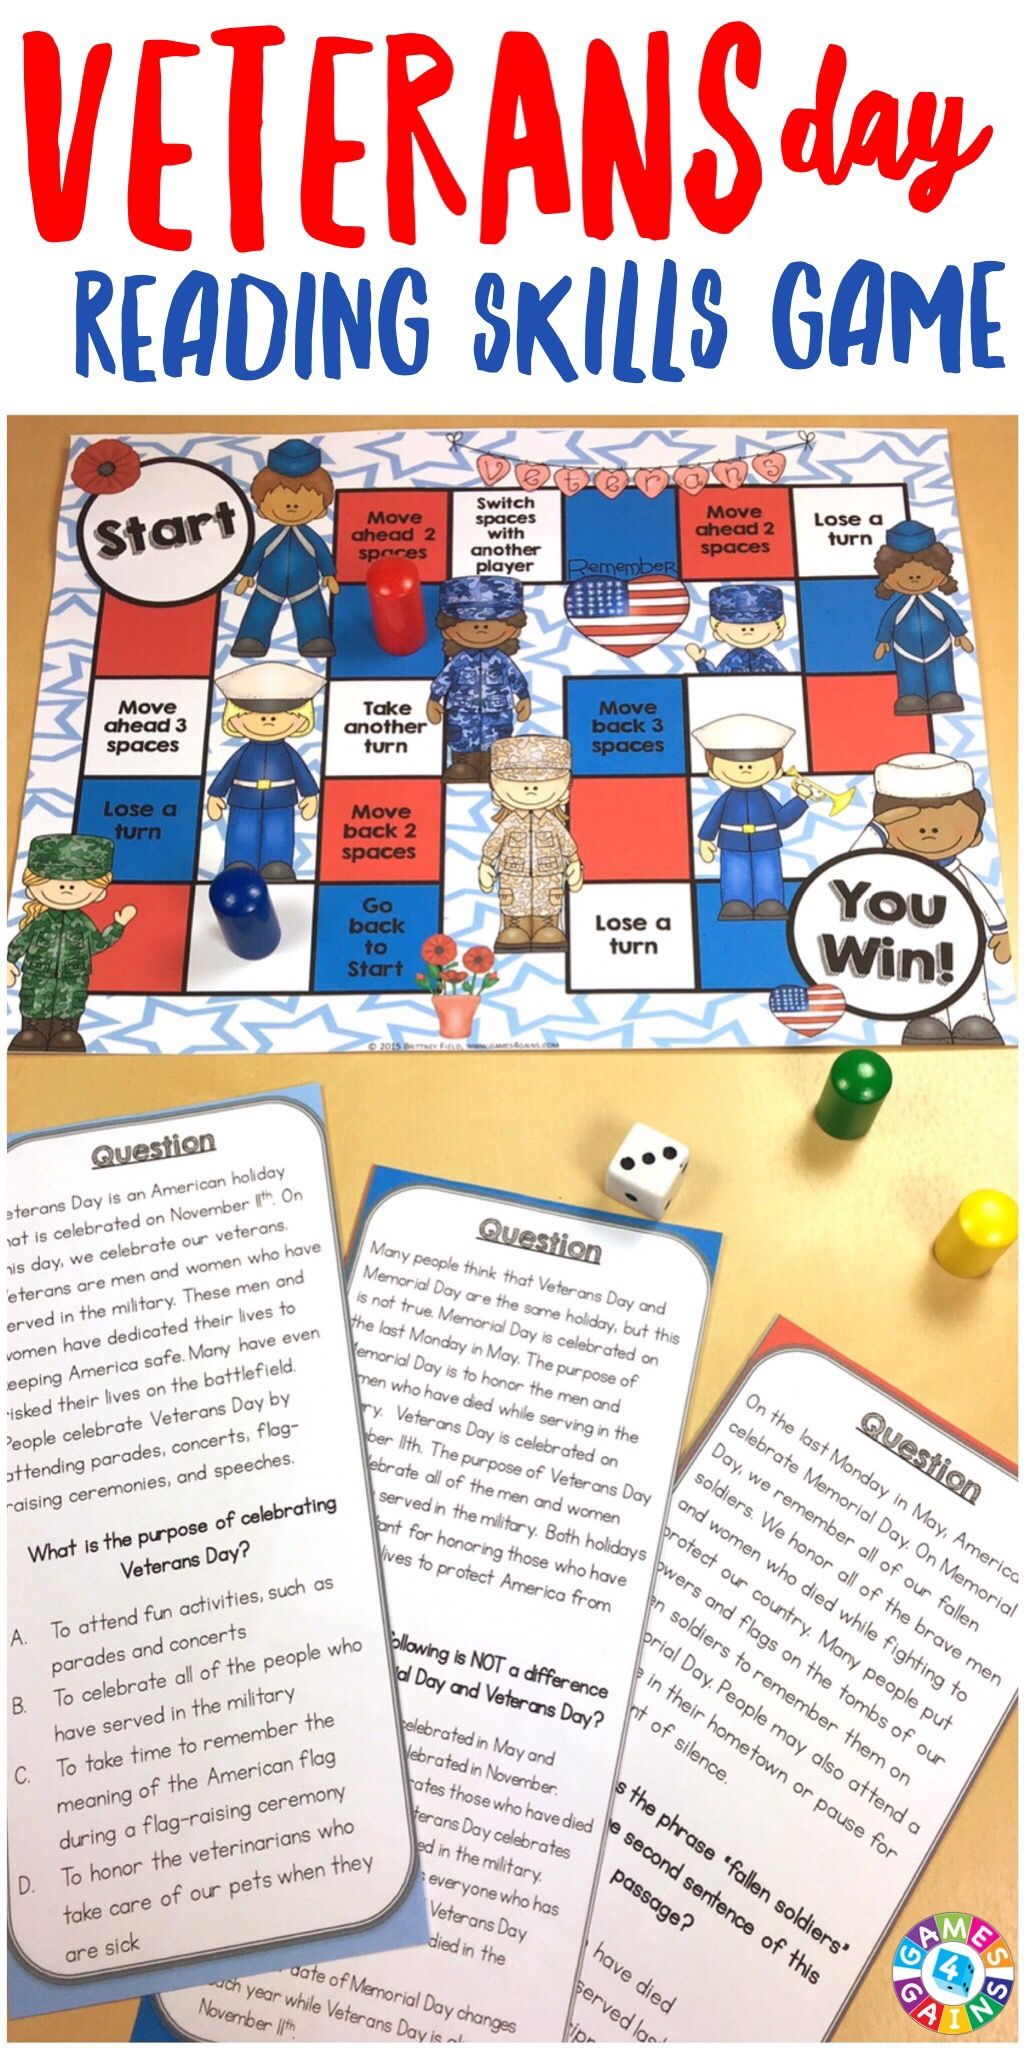 Veterans Day Activity Celebrate Armed Forces Reading Game